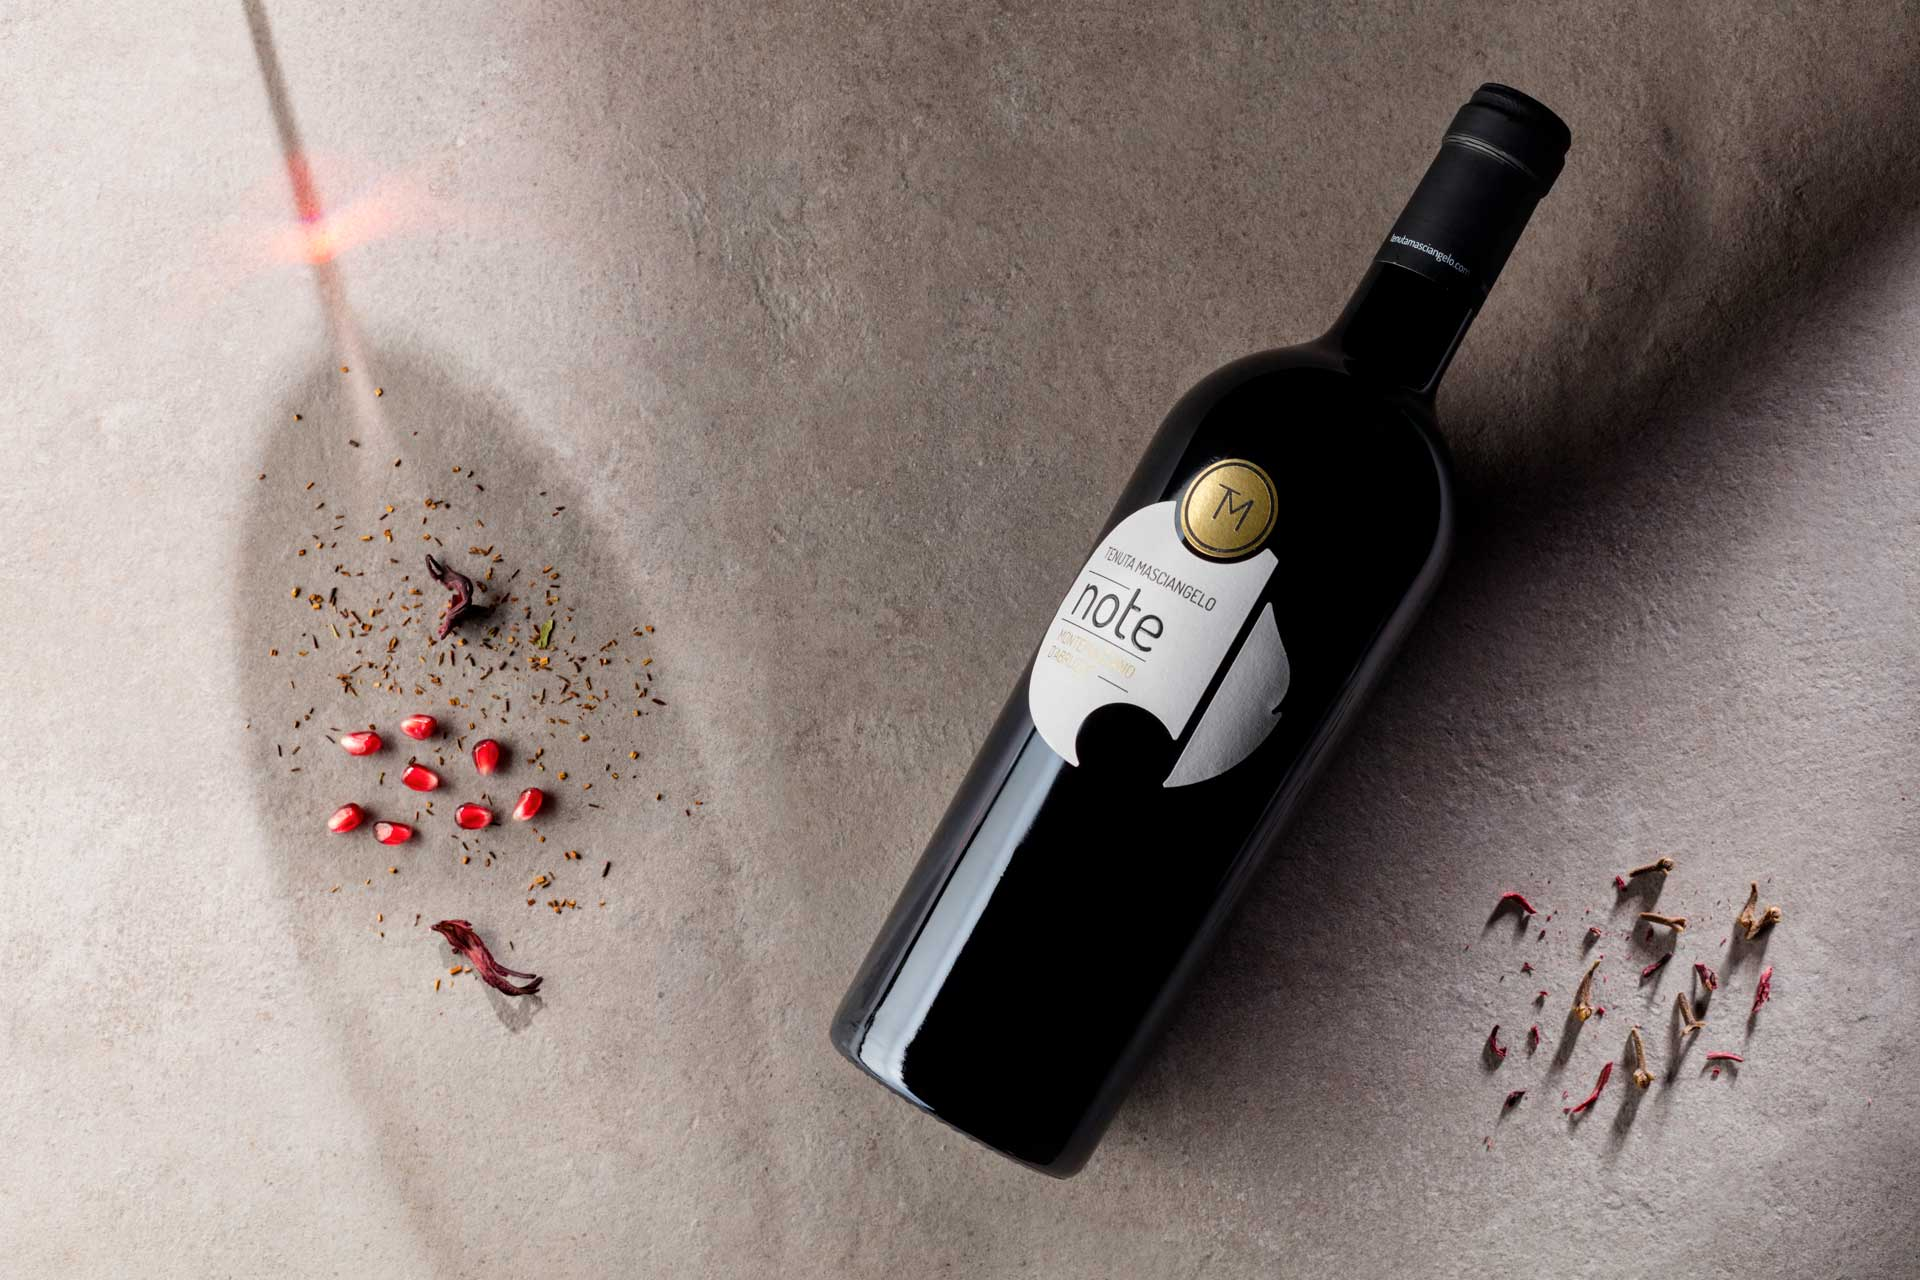 NOTES GOLD AND INDIGO AWARDED AT THE DECANTER WORLD WINE AWARDS 2018